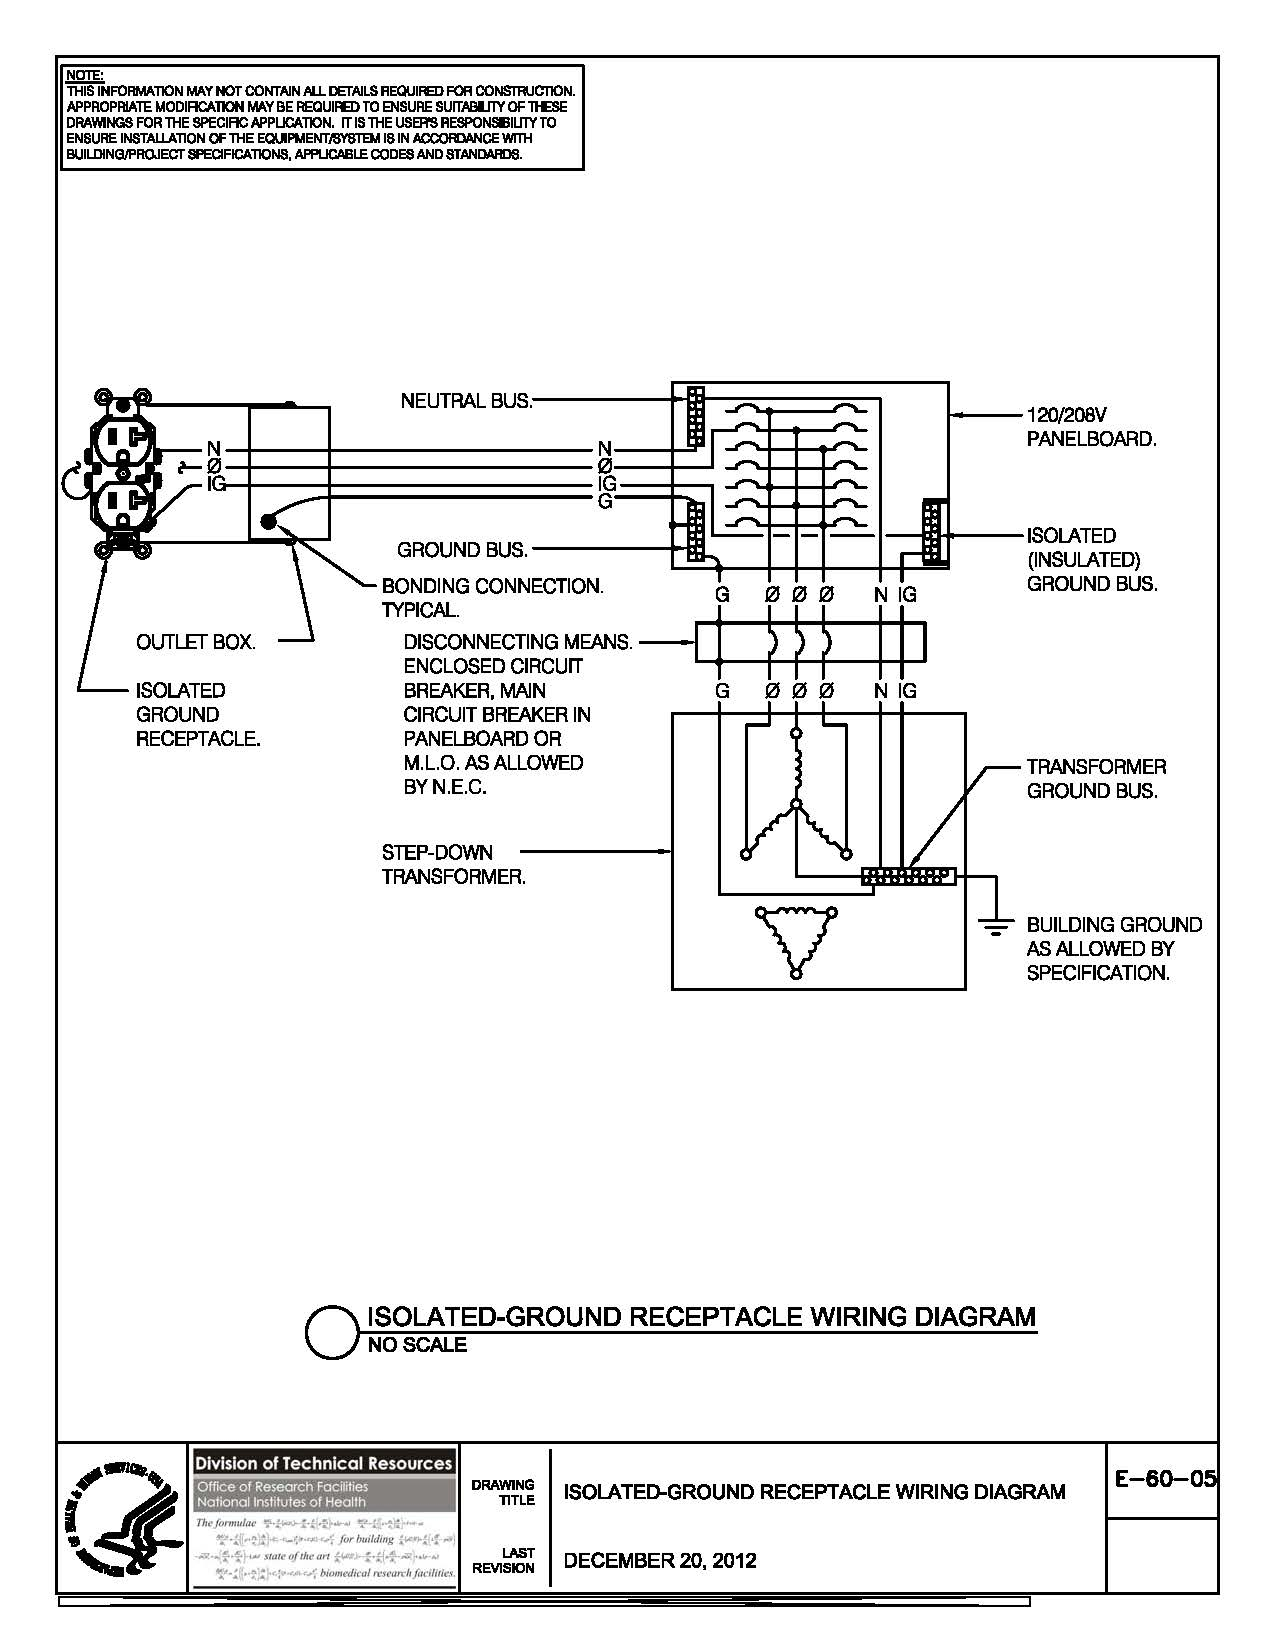 wh5 120 l wiring diagram Download-Light Fixture Wiring Diagram Inspirational Nih Standard Cad Details 6-j